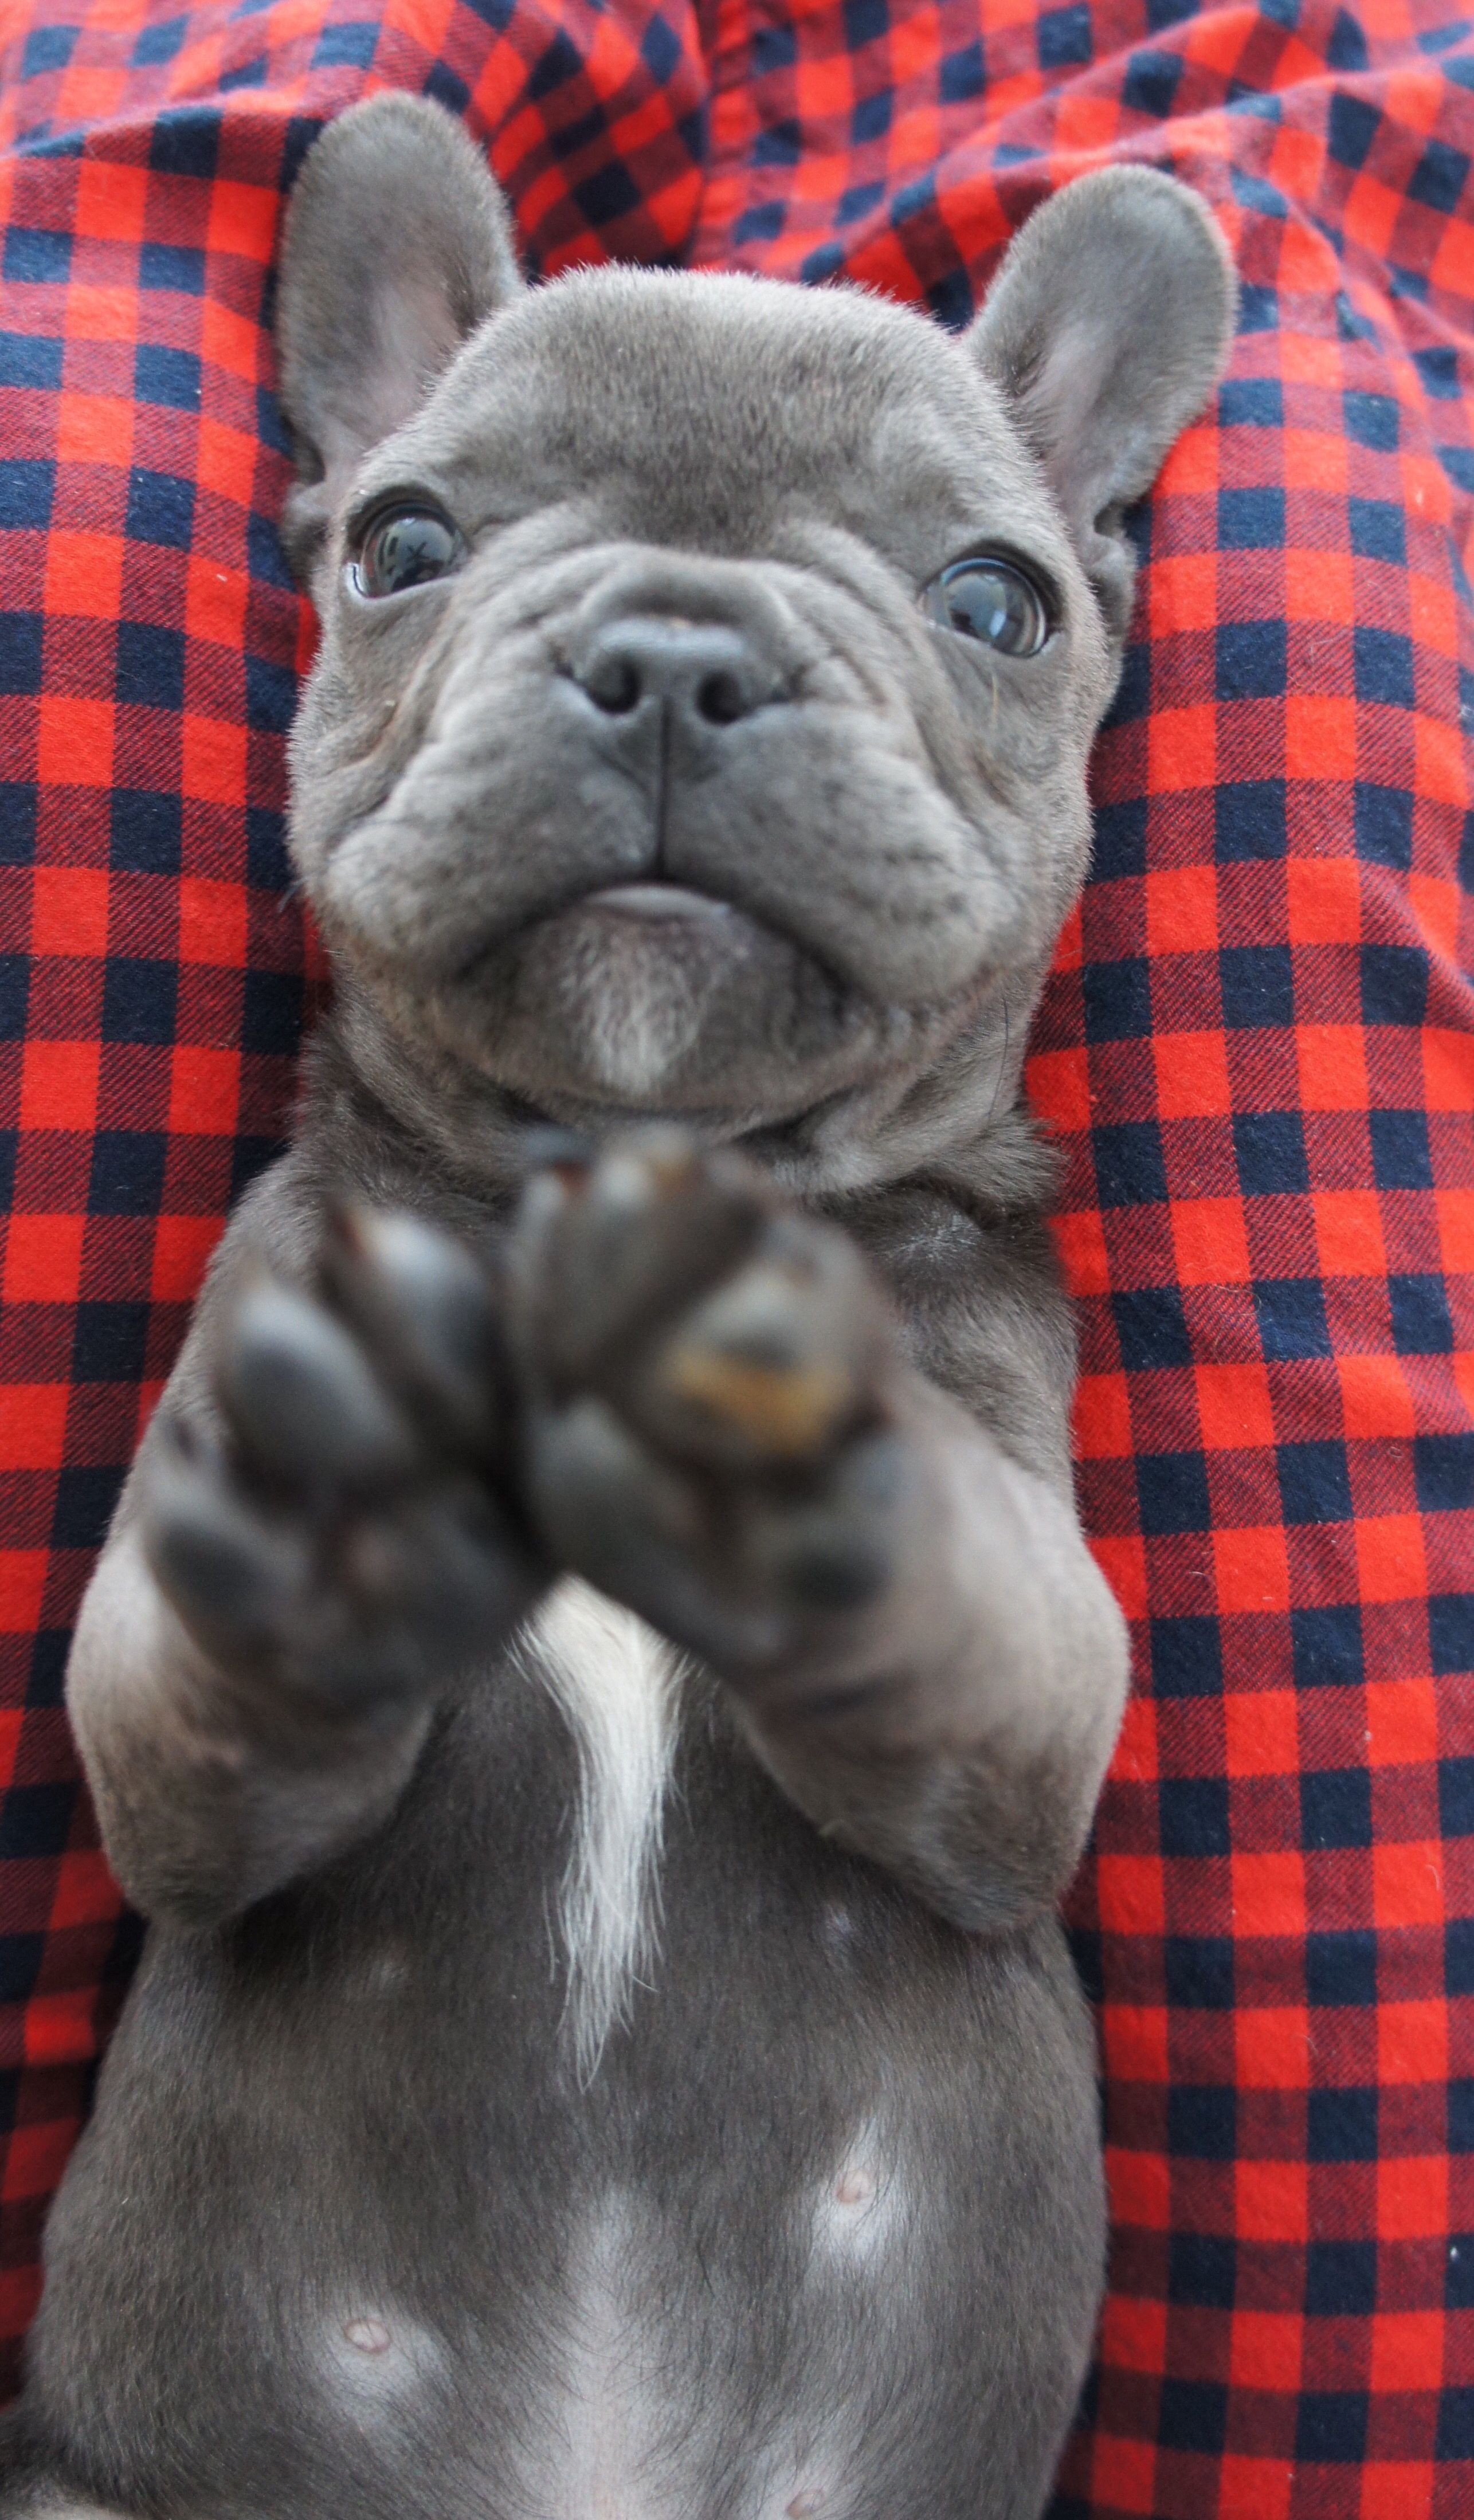 Sweet Blue French Bulldog Puppy Felipe Frenchie Buldog Frenchiepuppy Blue French Bulldog Puppies Bulldog French Bulldog Blue